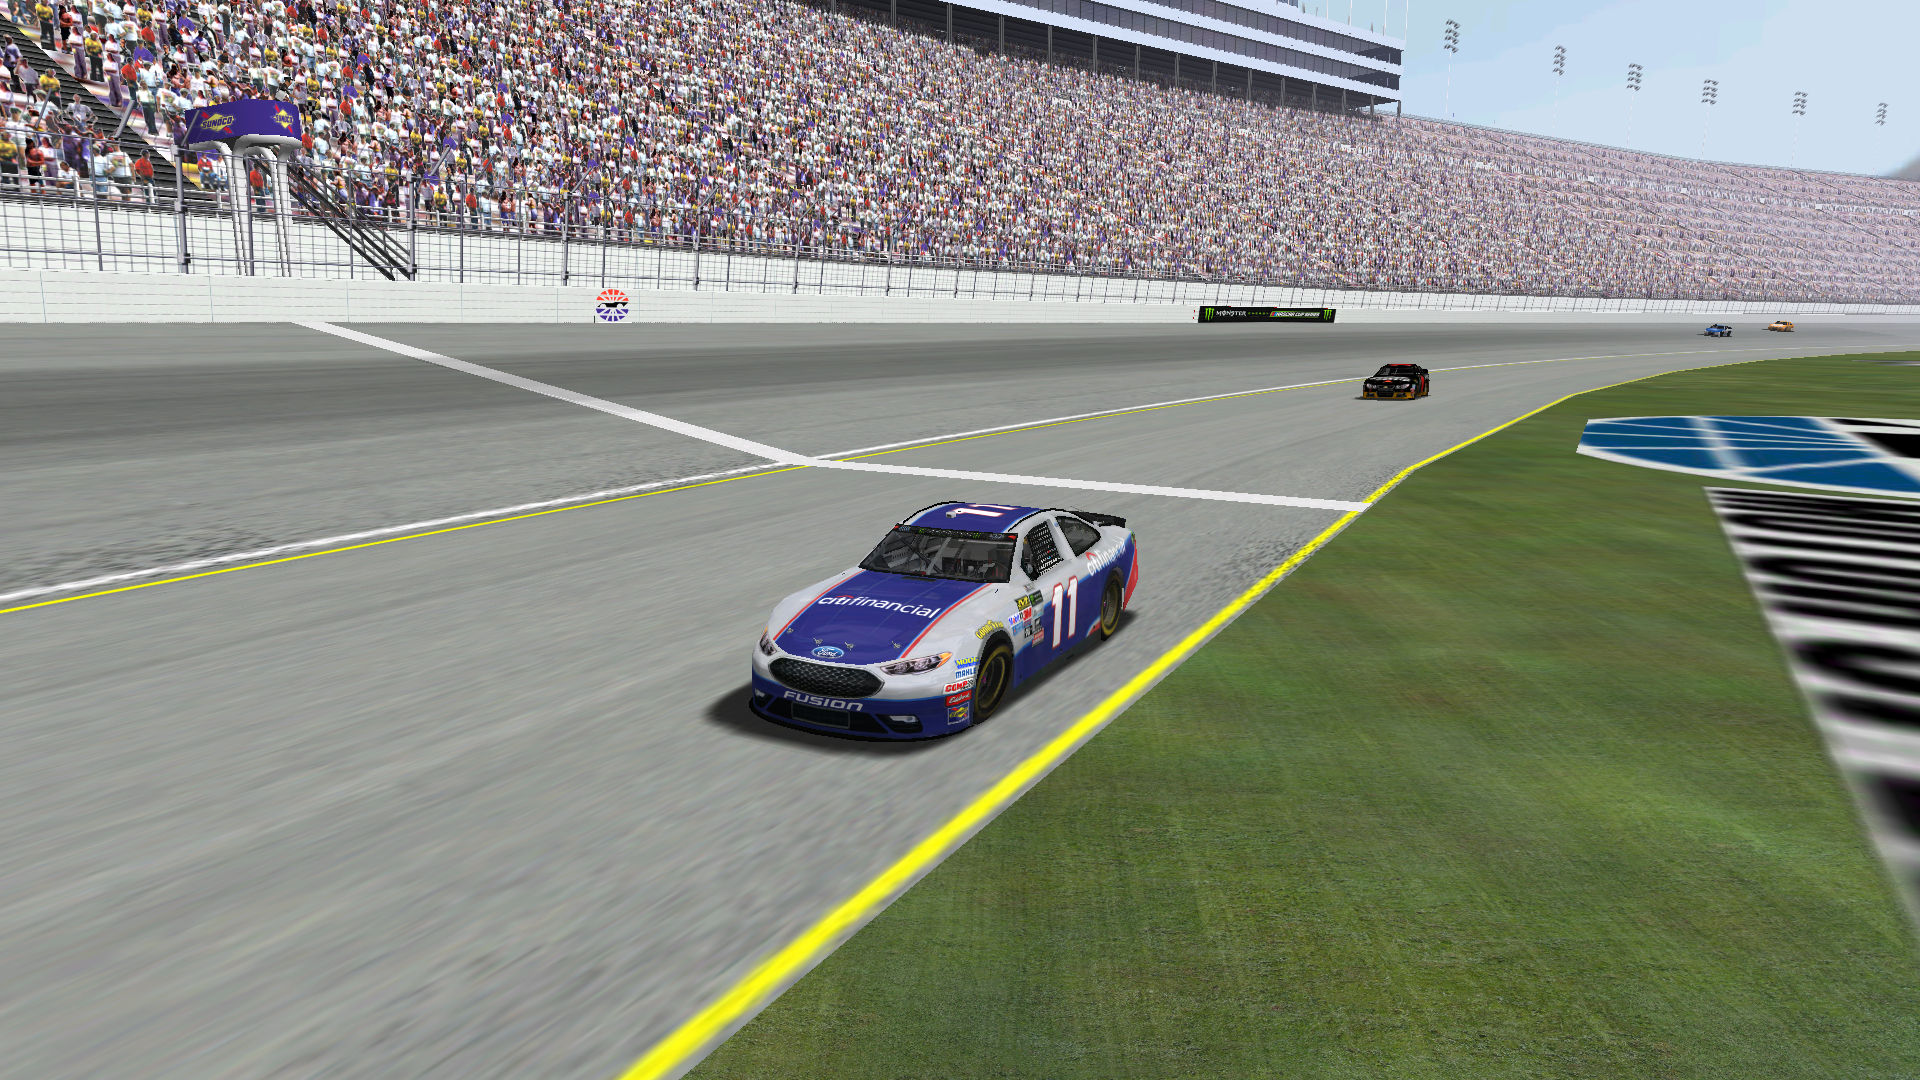 Speedyman11 wins his 38th Patch Cup victory with lepage71 following. (Credit: DusterLag / HeatFinder)